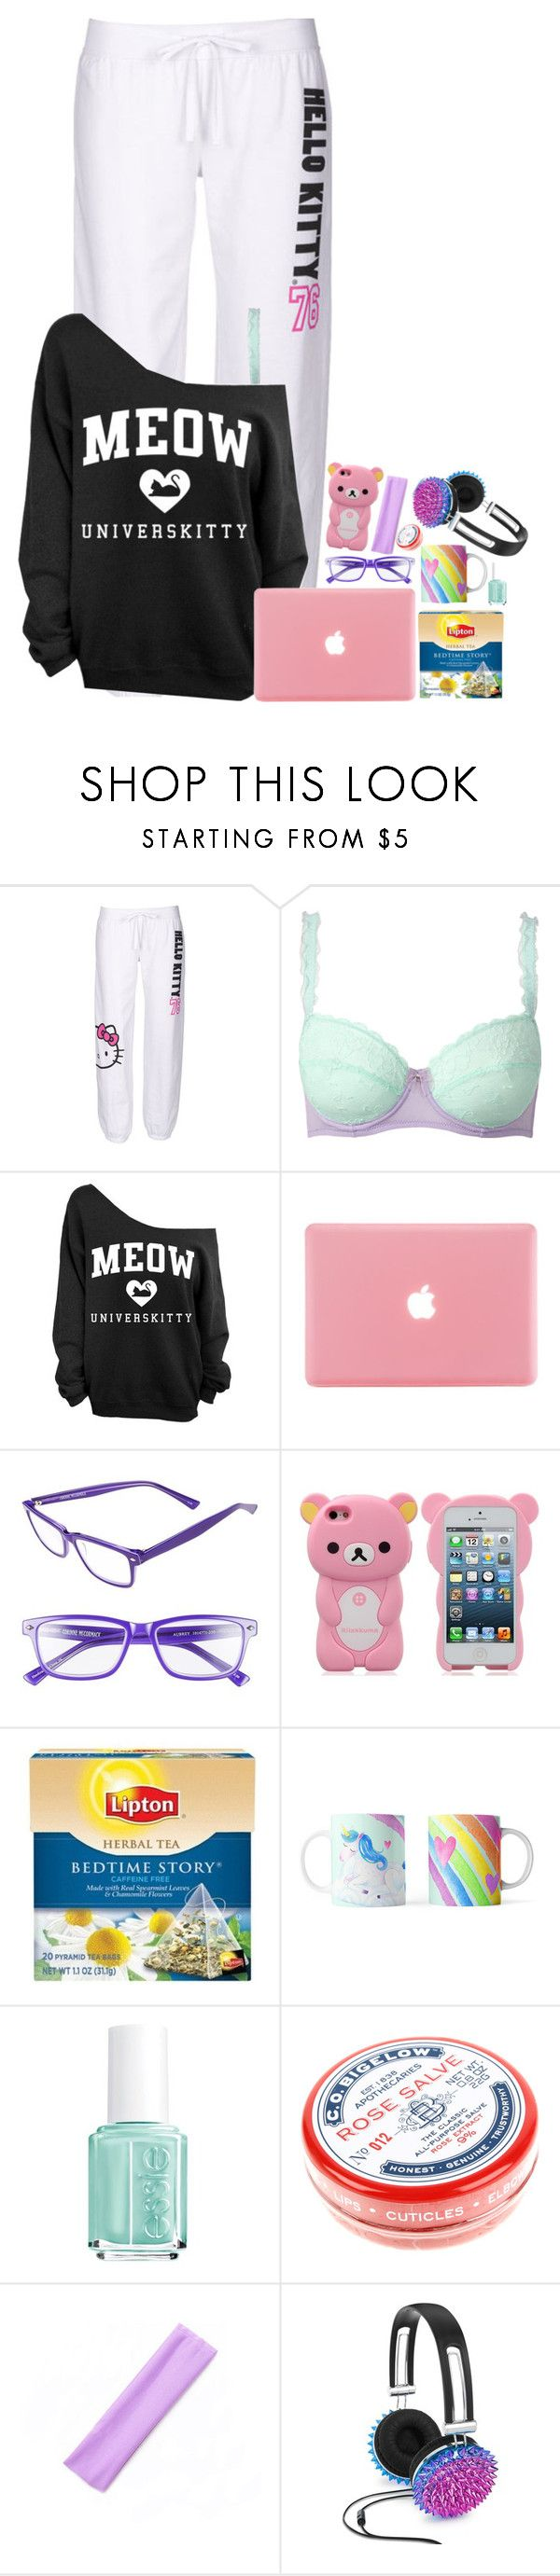 """Untitled #1321"" by emmzizleez888 ❤ liked on Polyvore featuring Hello Kitty, Corinne McCormack, Lipton, Essie, C.O. Bigelow, Celebrate Shop and vintage"